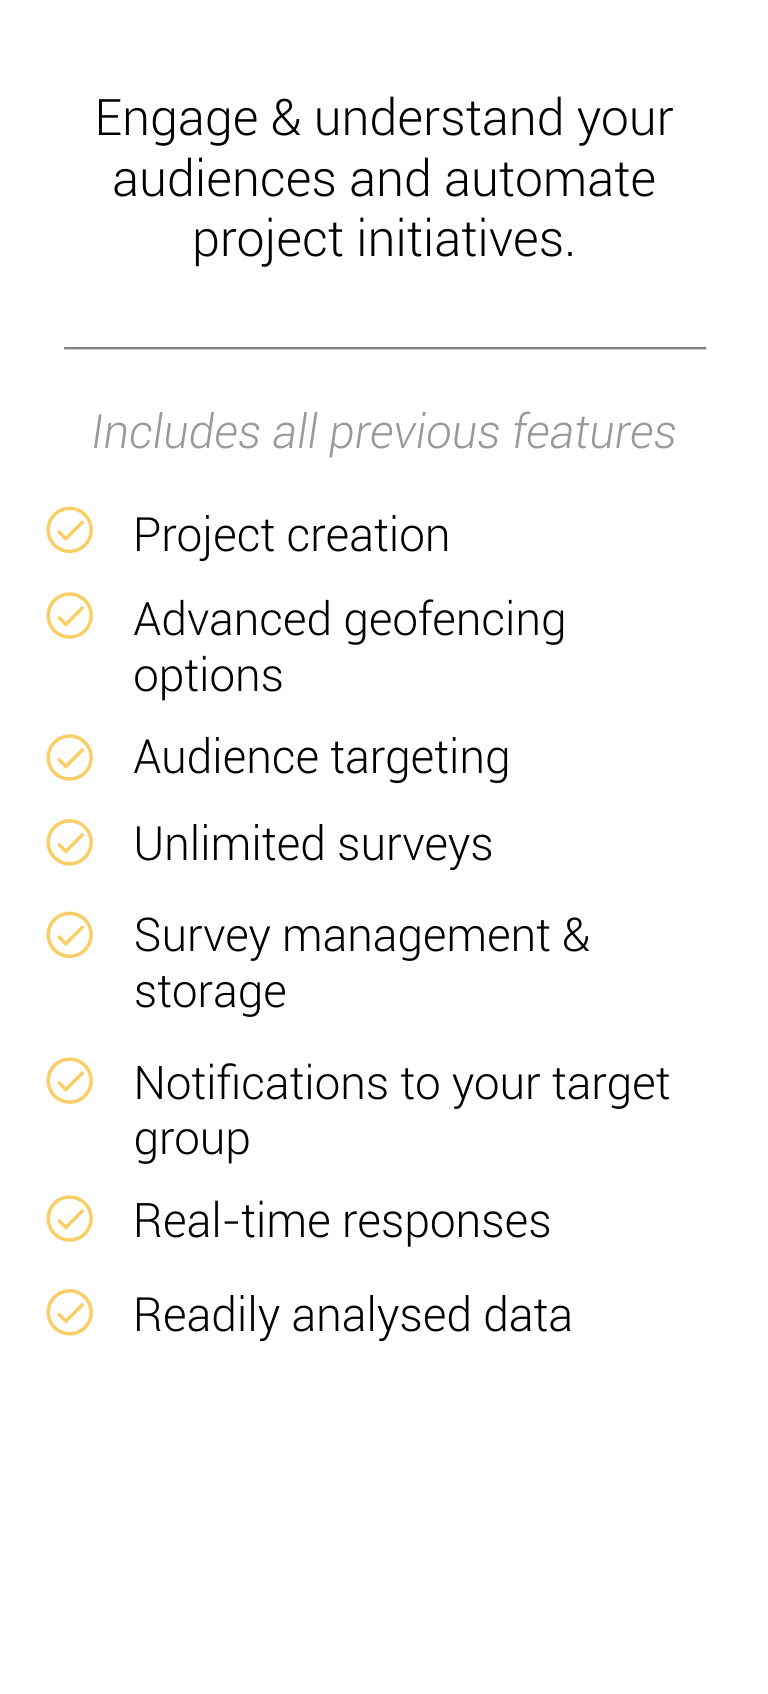 Crowd engagement - Engage & understand your audiences and automate project initiatives.